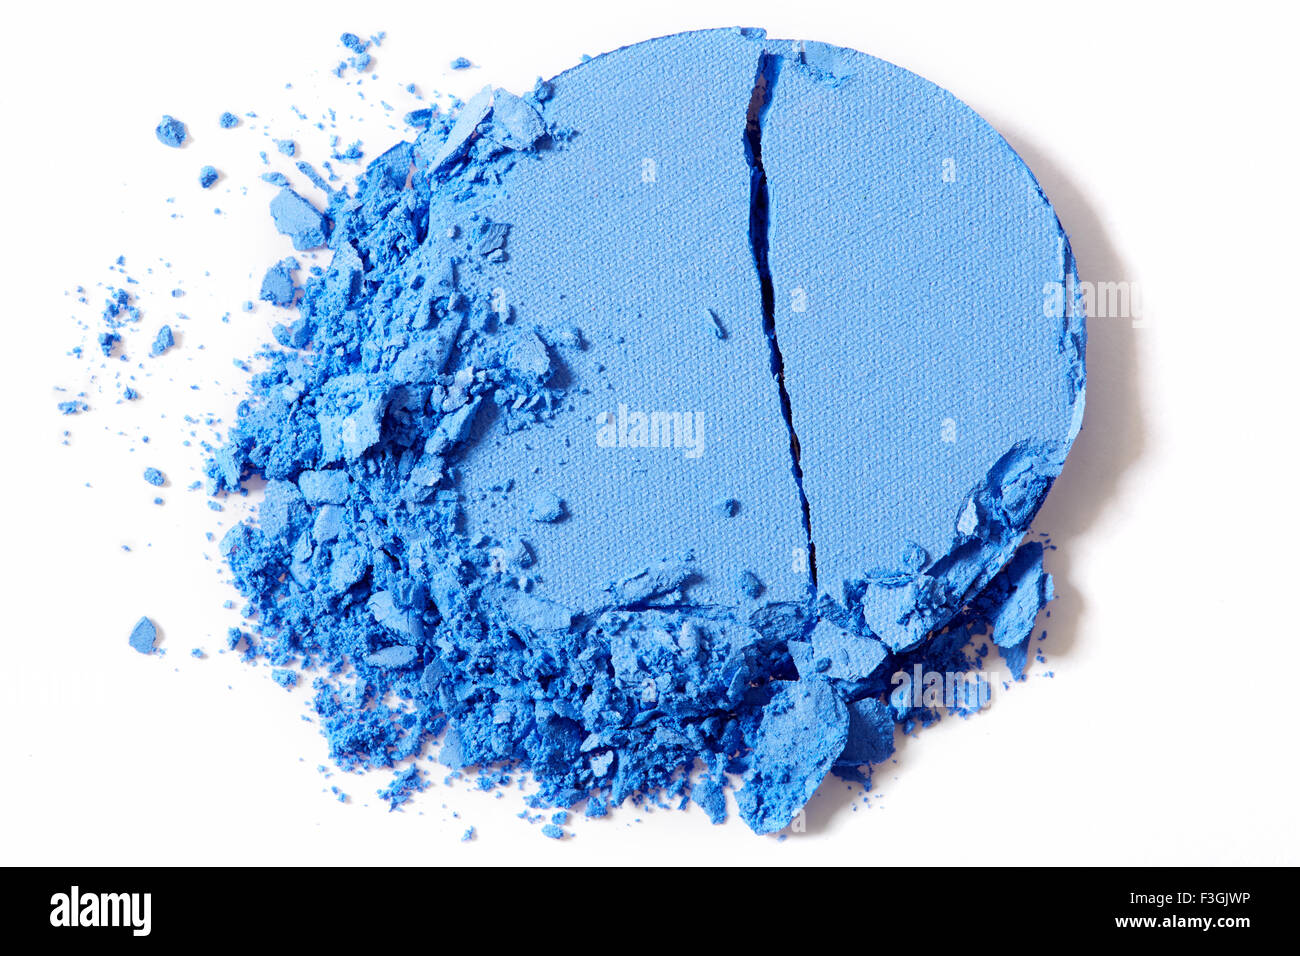 Blue eye shadow, crushed cosmetic on white - Stock Image